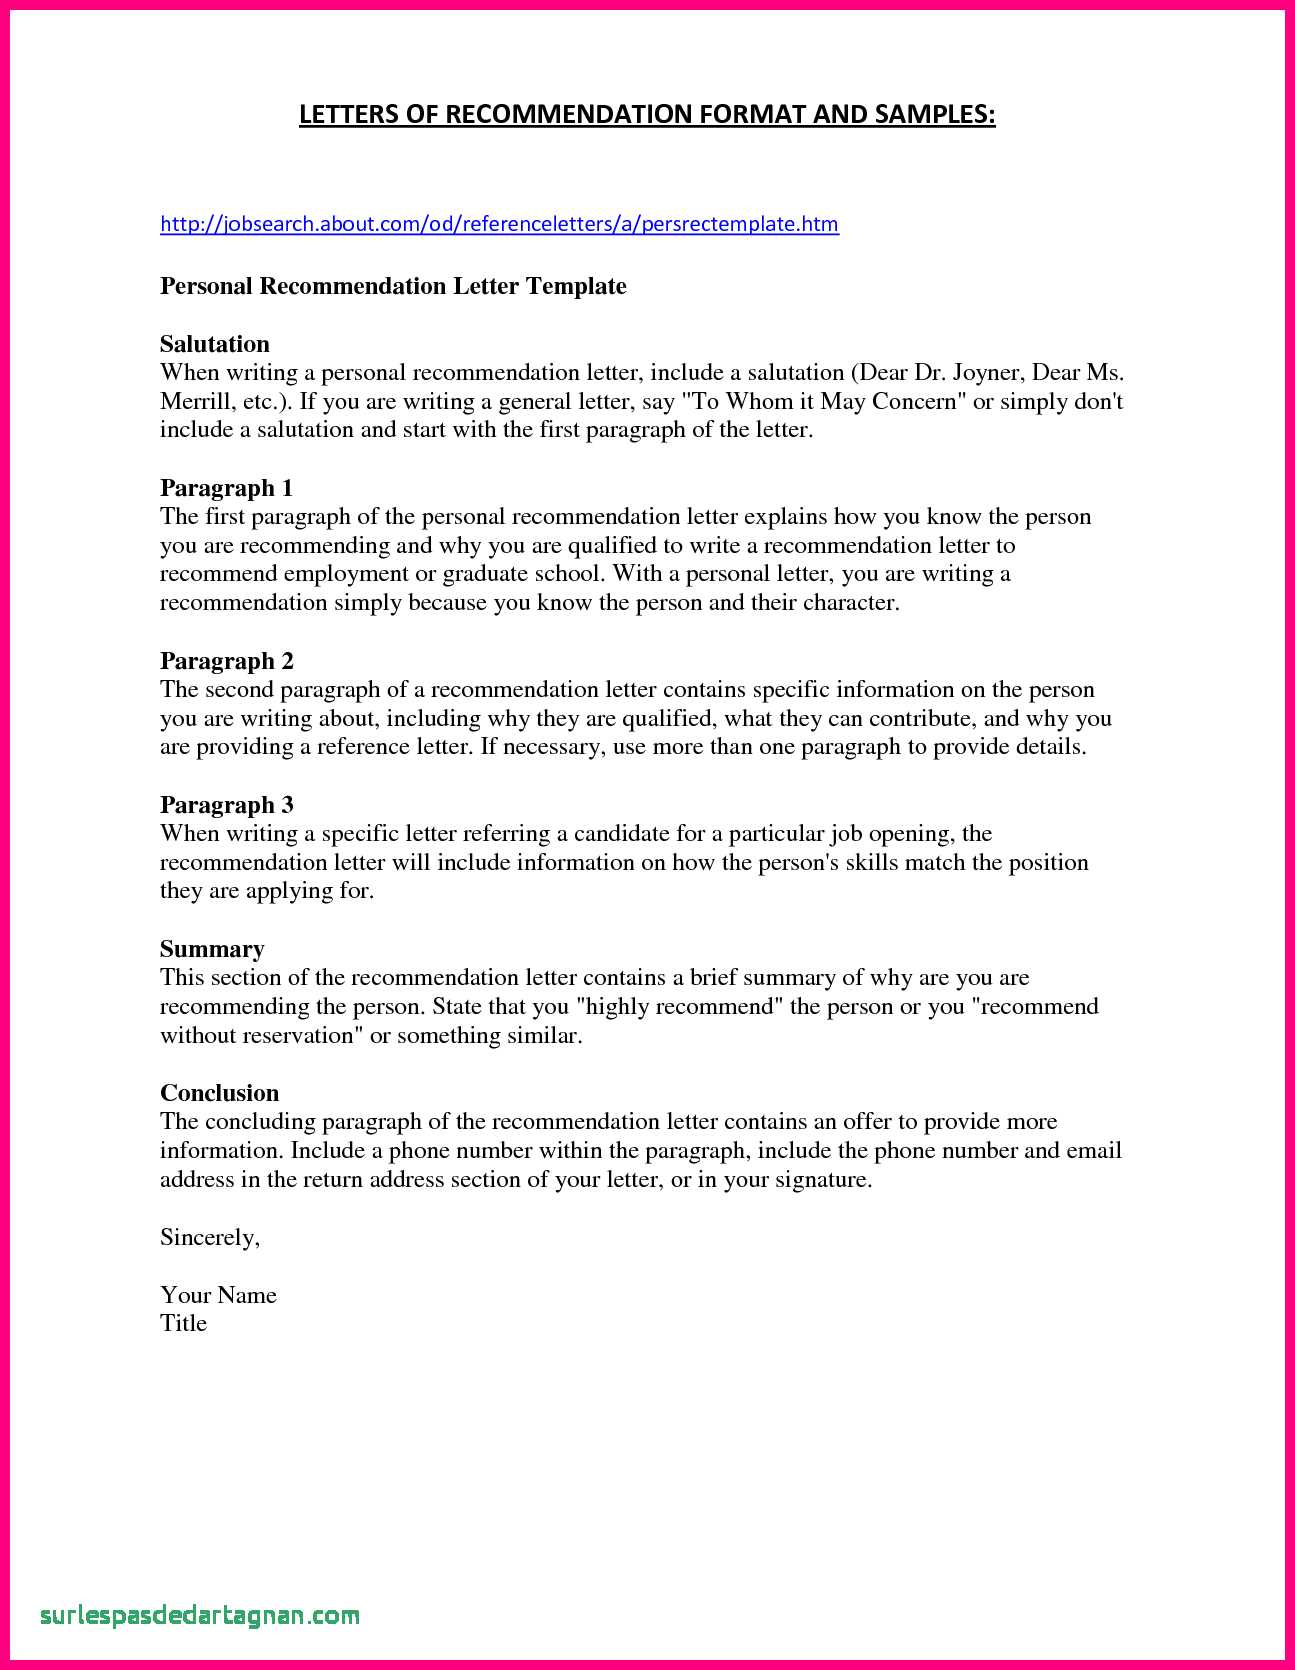 Sample Letter Of Recommendation Template Free - Best Re Mendation Letter Template for Job